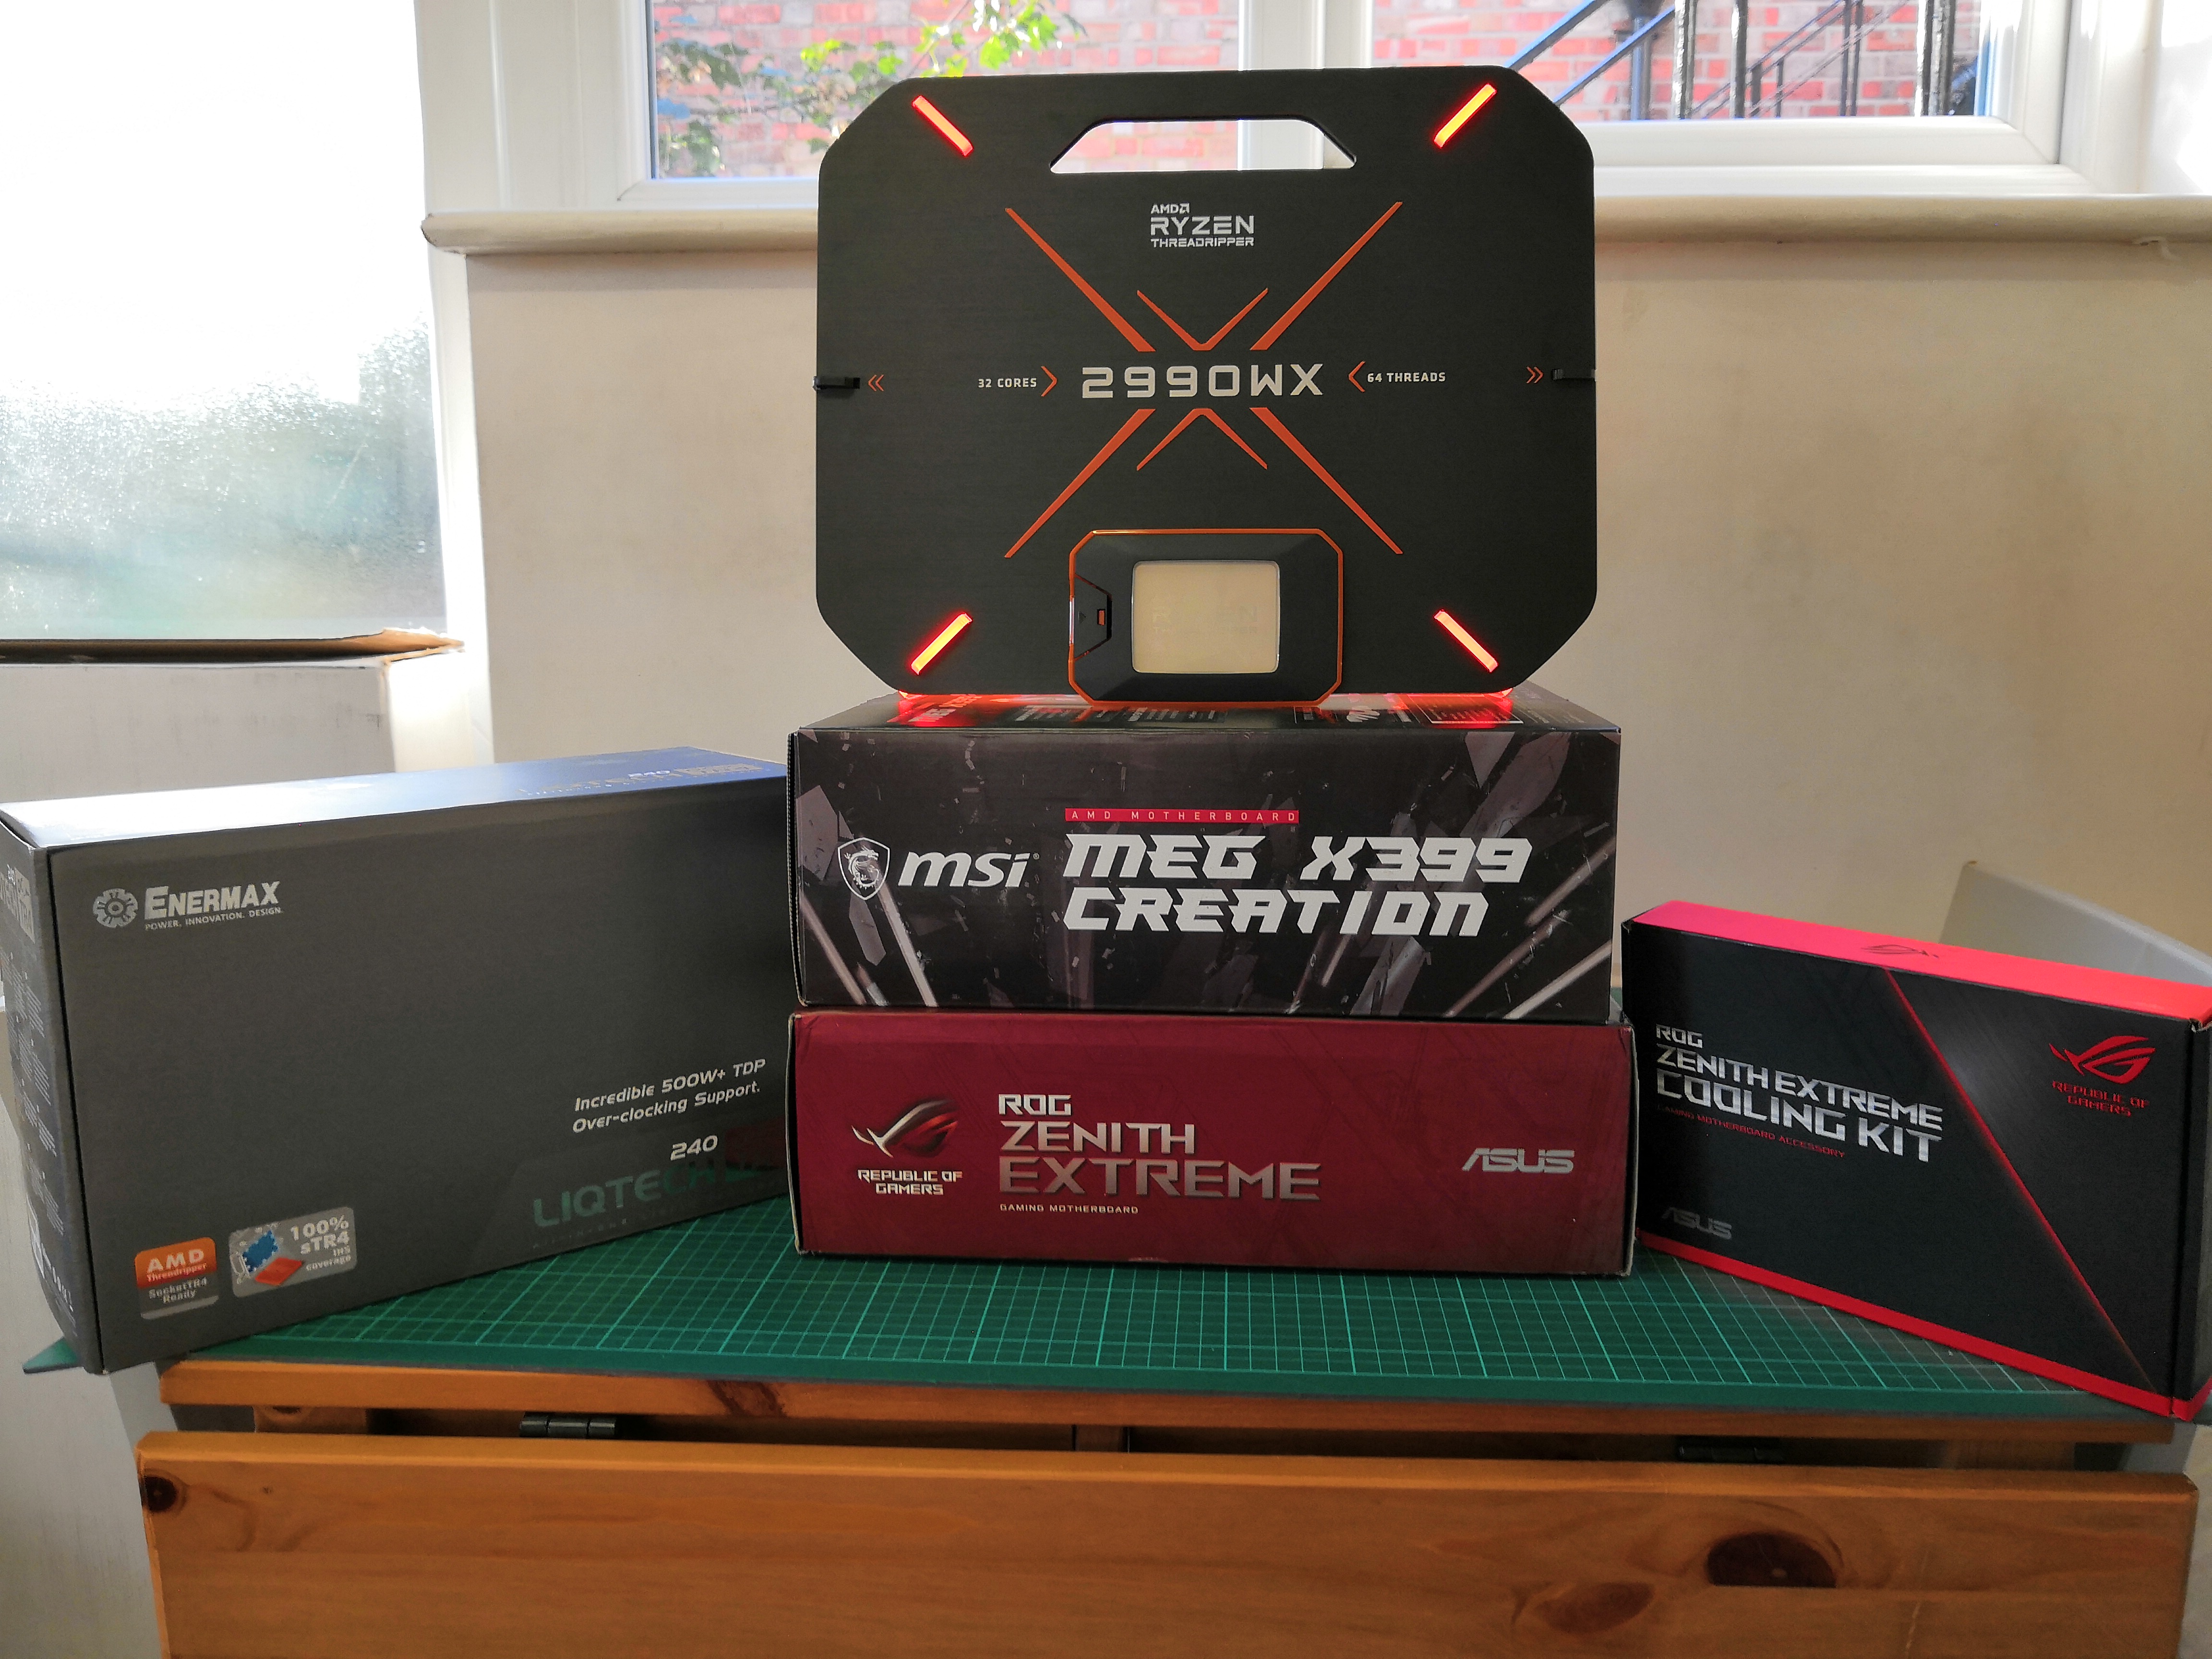 Test Setup and Comparison Points - The AMD Threadripper